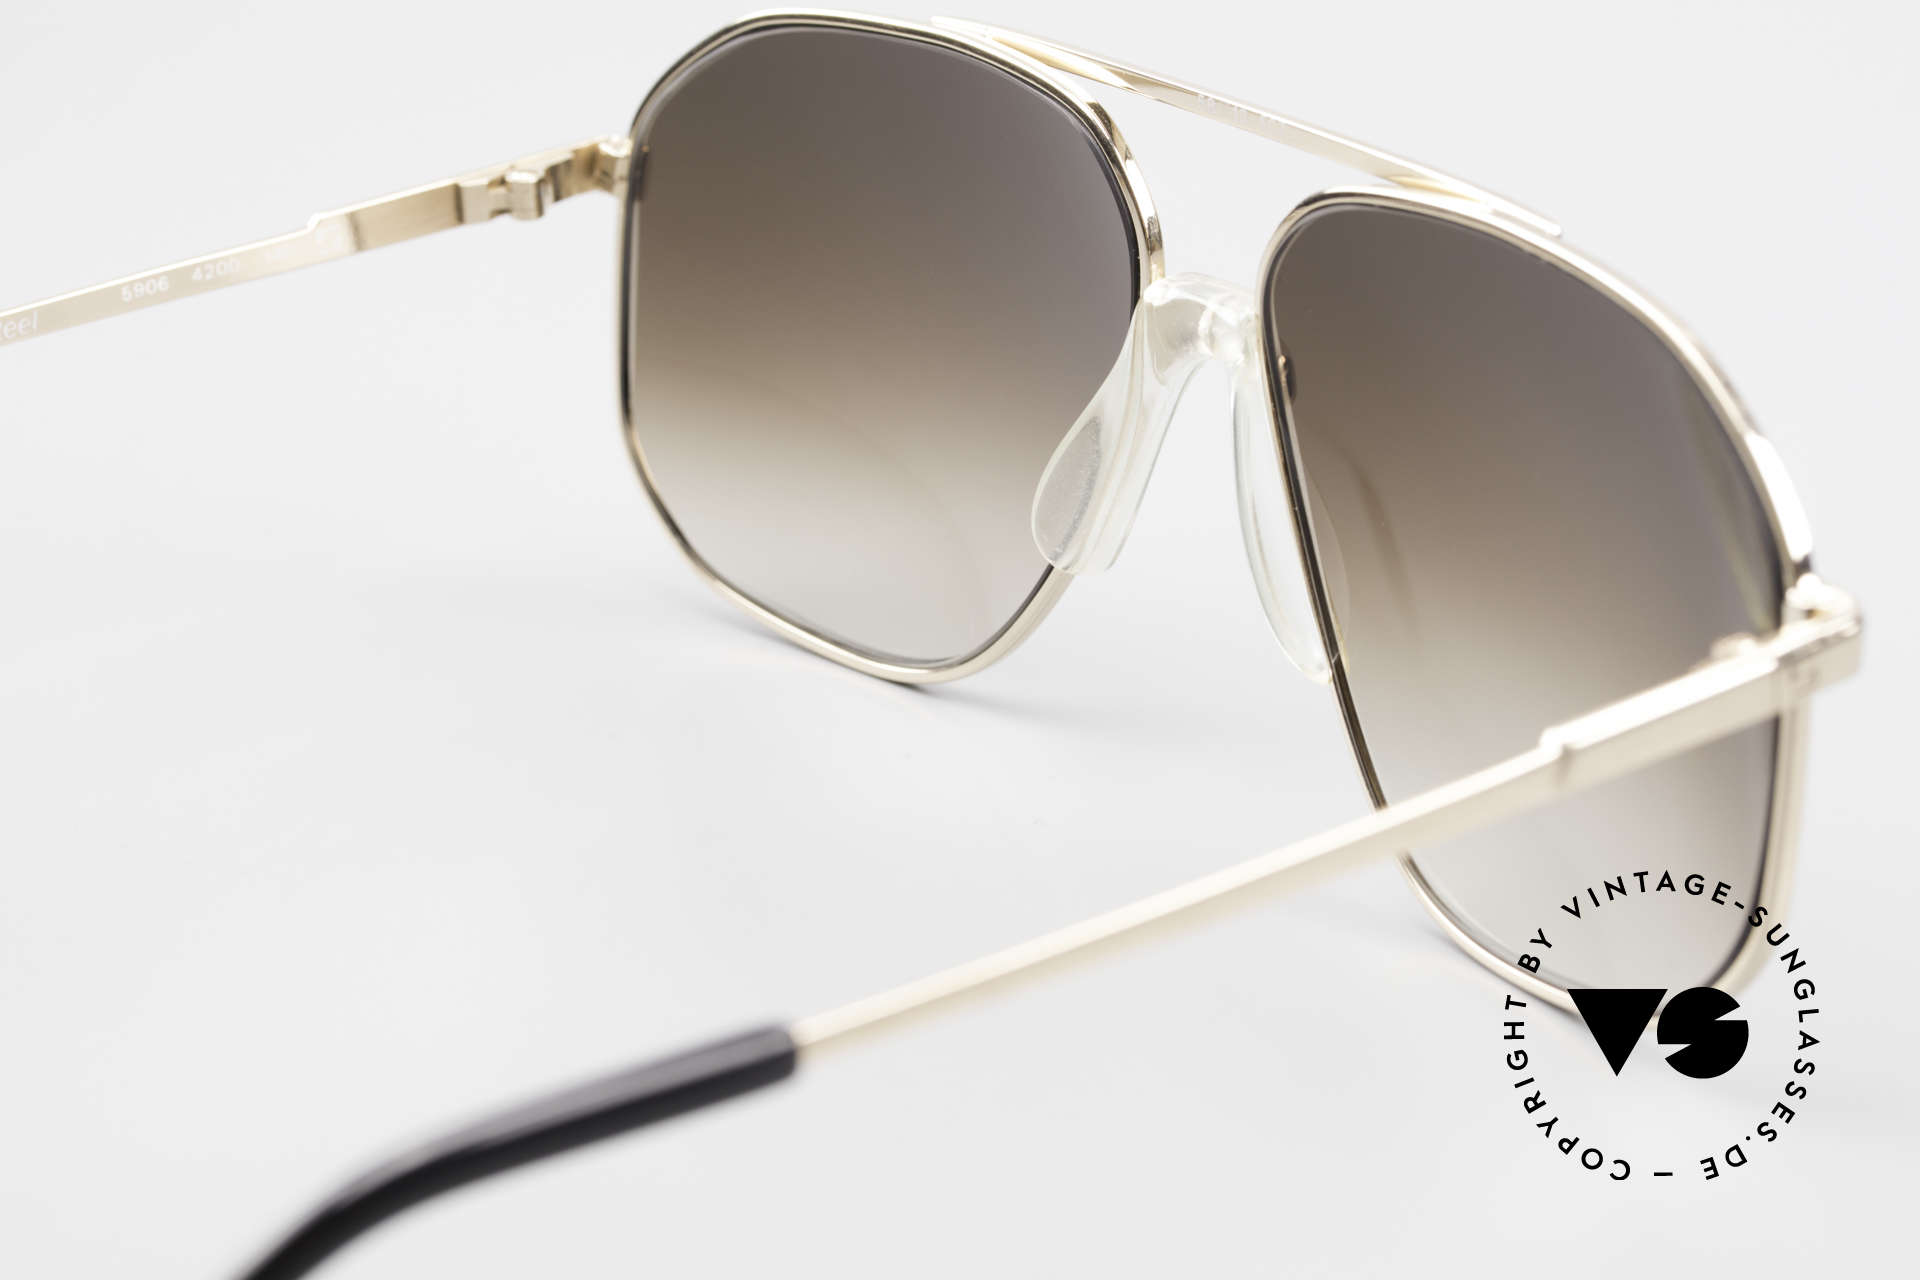 Zeiss 5906 Old 80's Quality Aviator Shades, NO RETRO fashion, but a rare 35 years old original, Made for Men